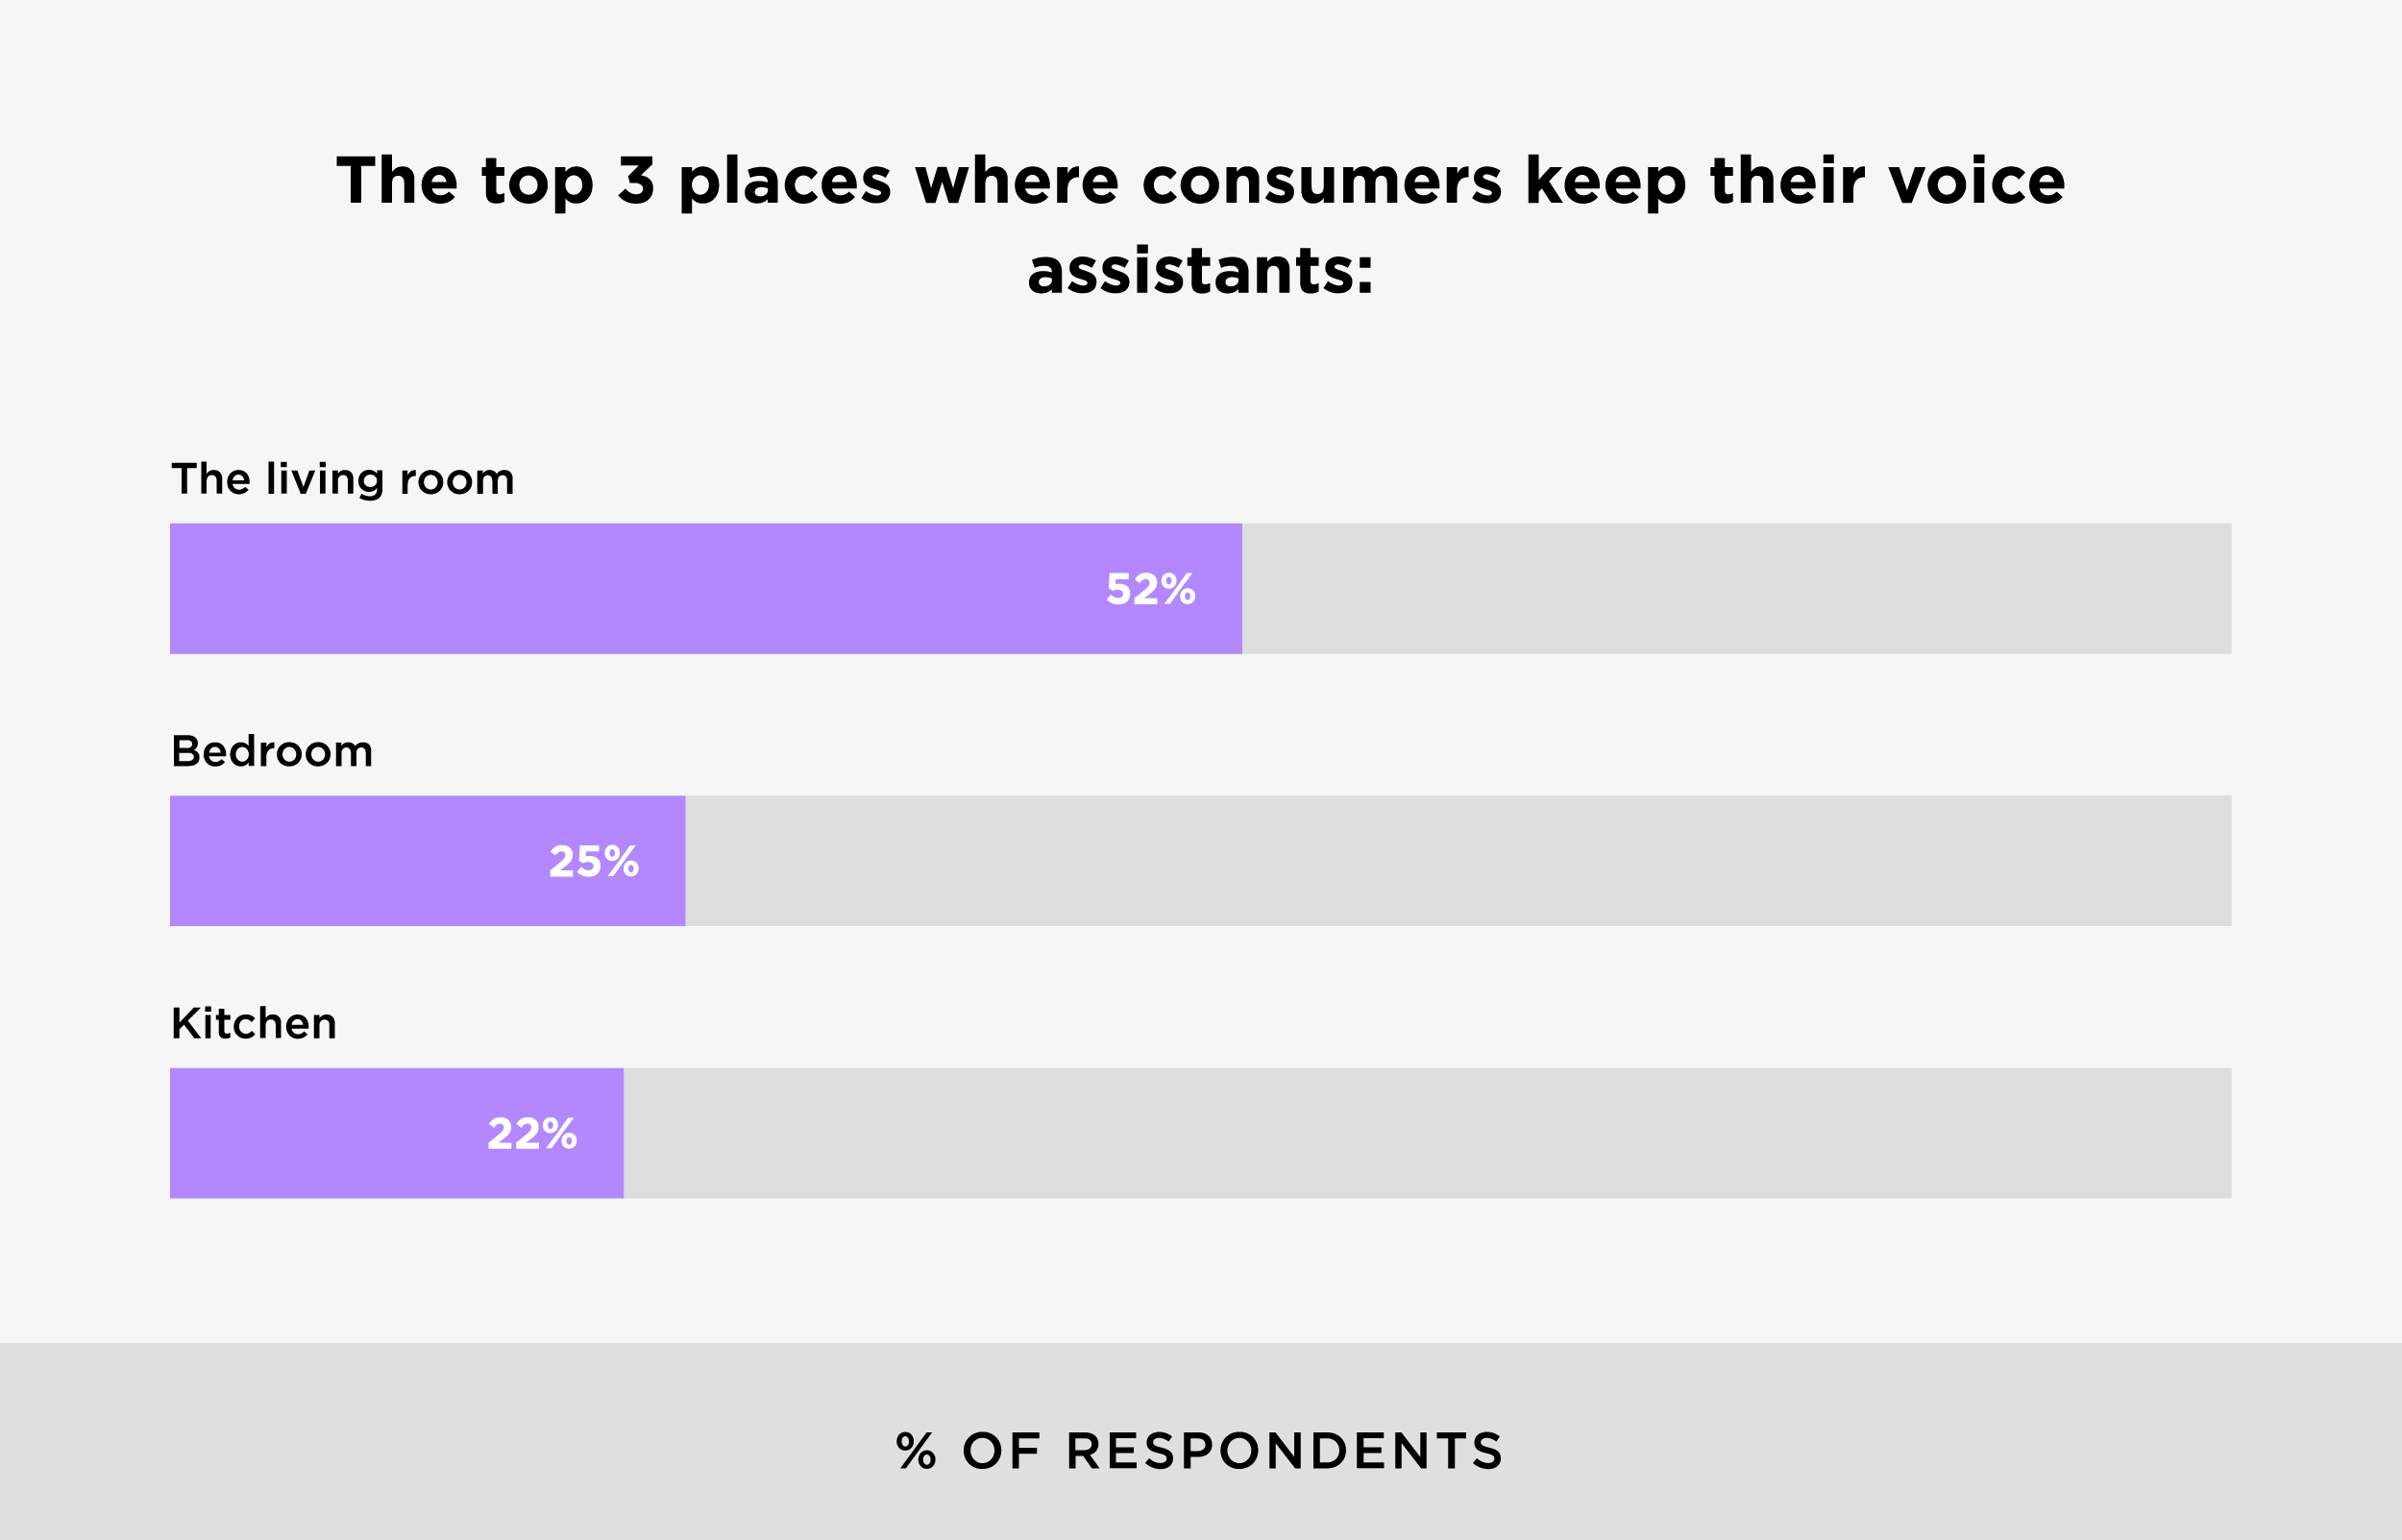 The top 3 places where consumers keep their voice assistants